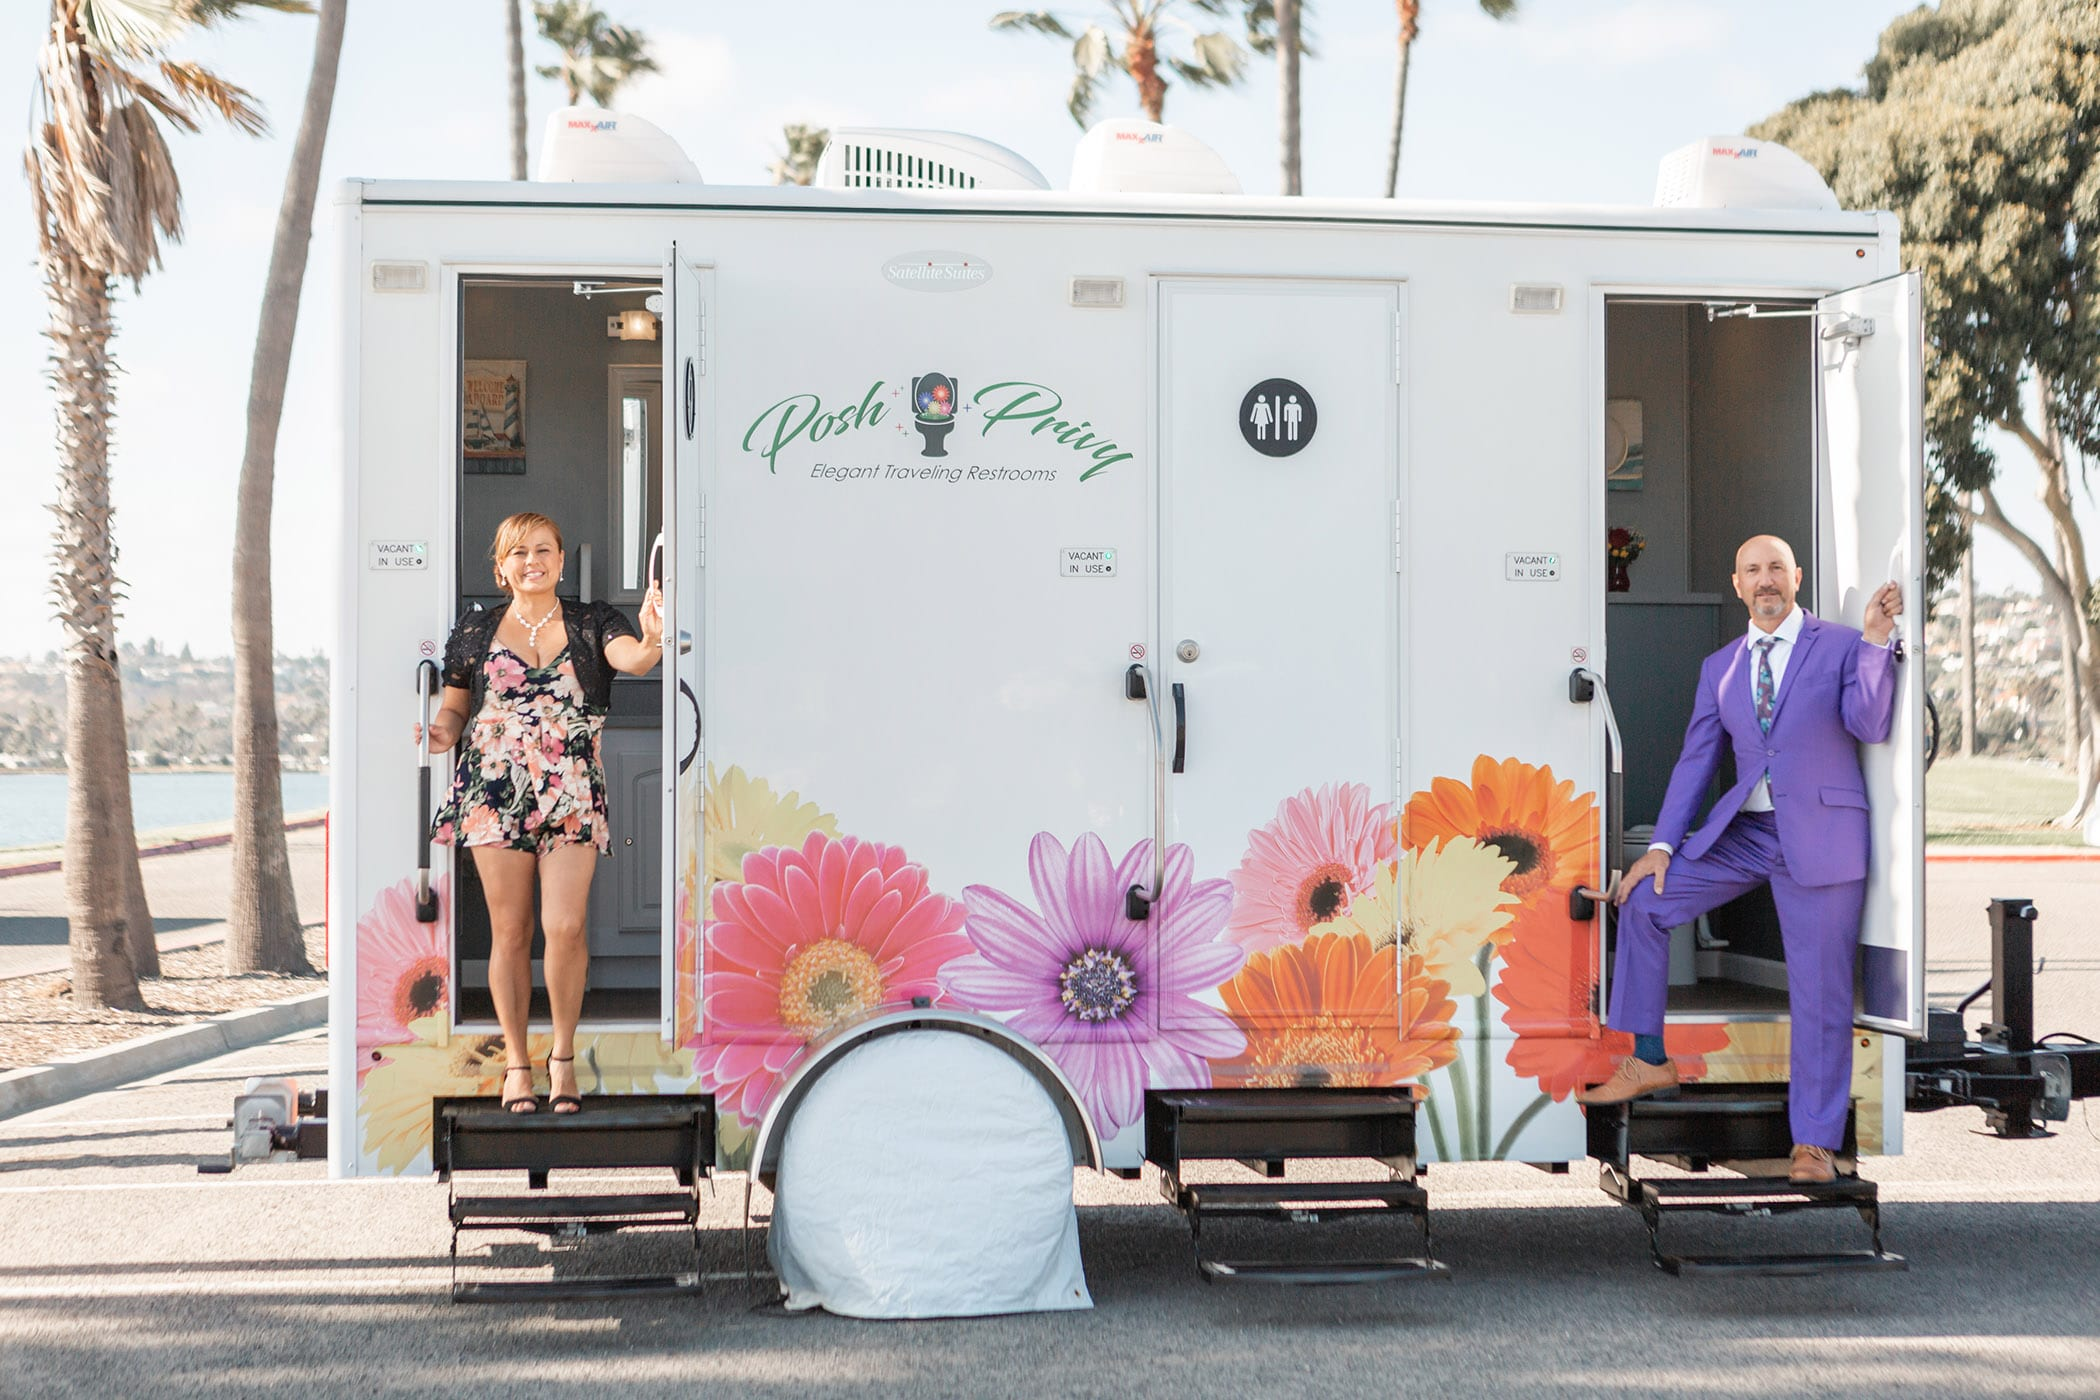 Business Spotlight: Posh Privy by San Diego Style Weddings